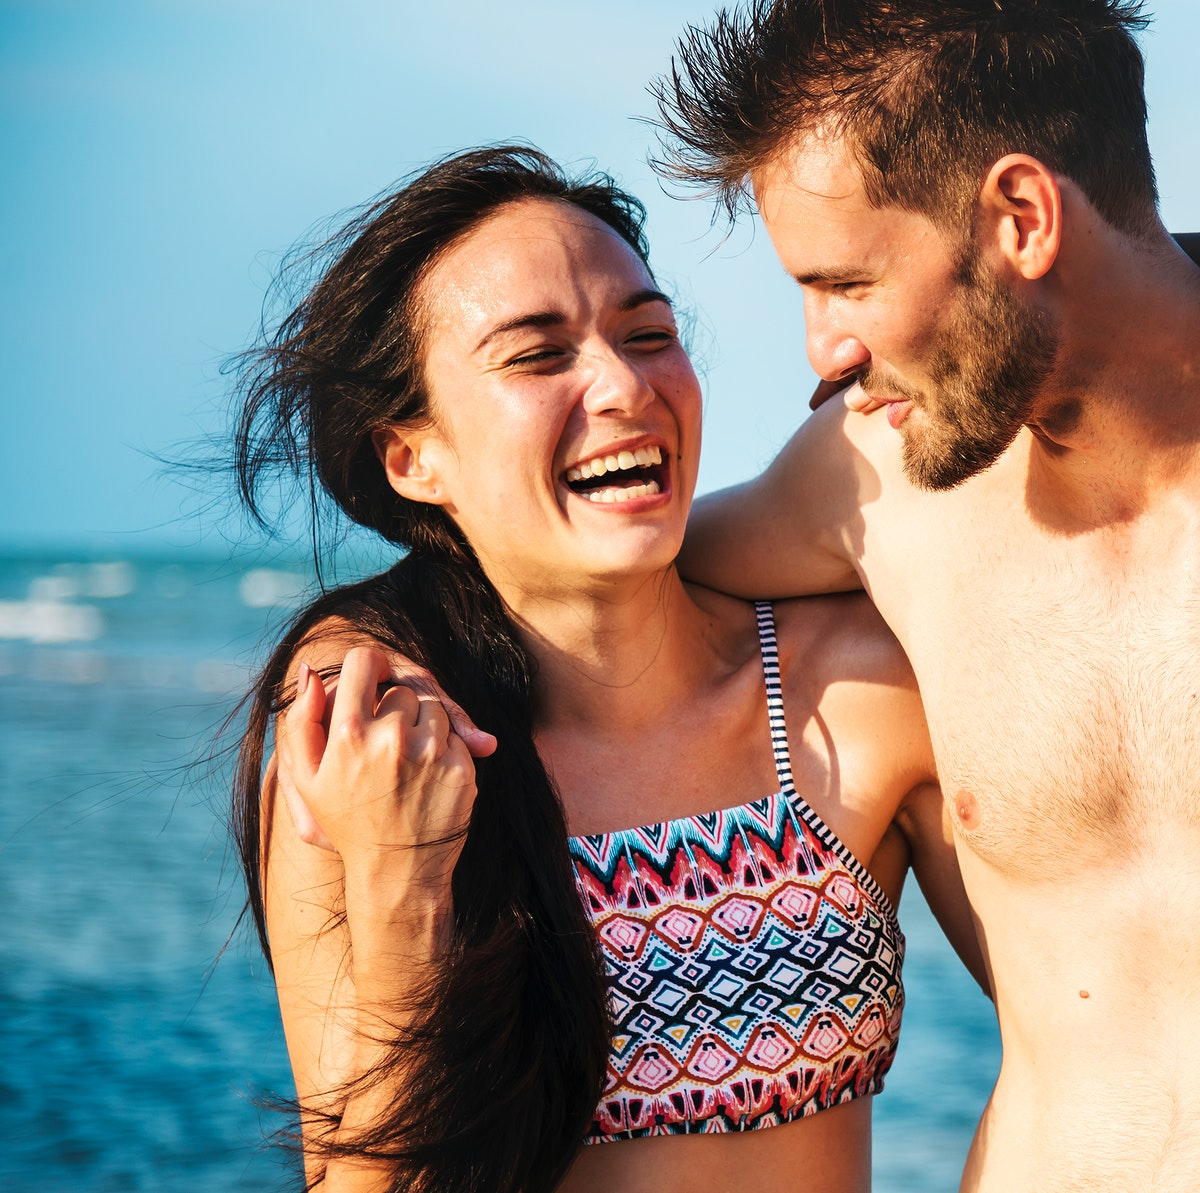 Happy couple having a romantic moment at the beach